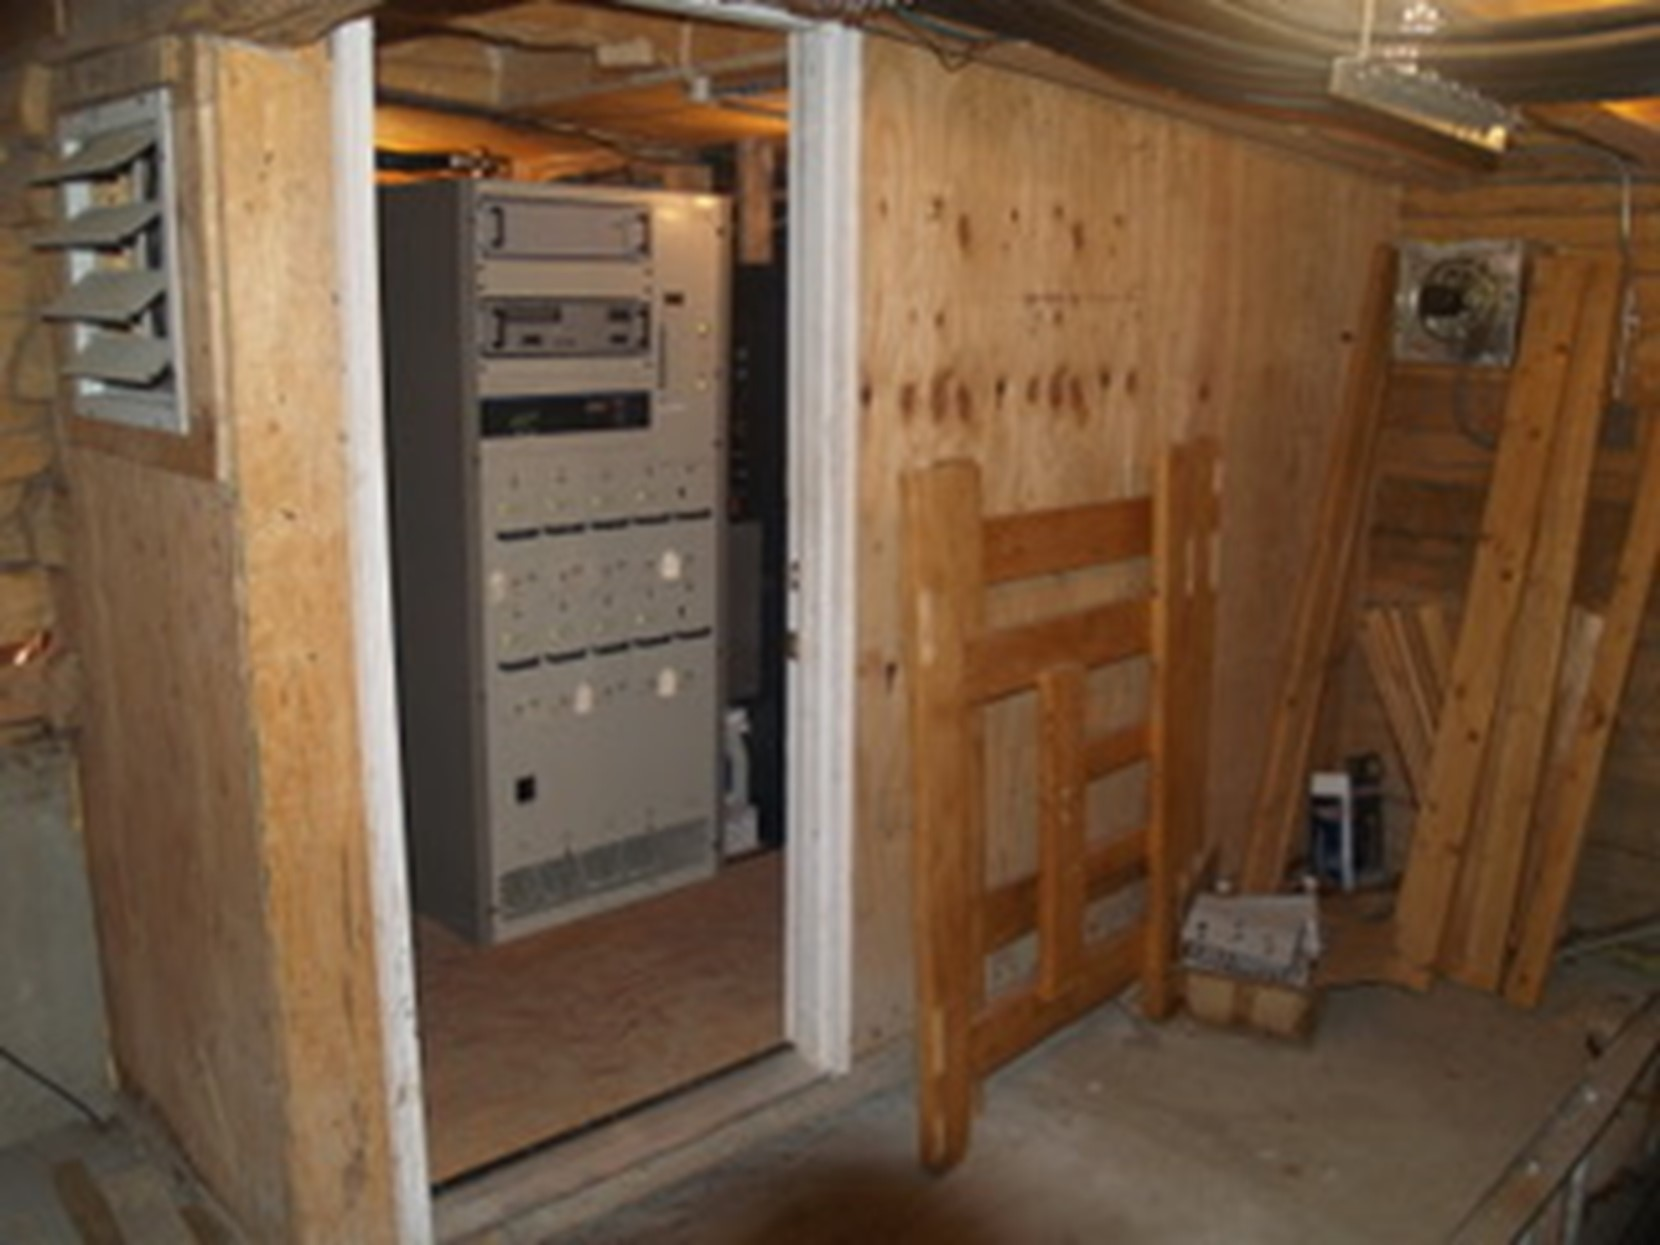 A 19-year-old transmitter in a site tucked into a tiny room under a ski lift, reliant on unfiltered outside air for cooling. Should the transmitter site fail, 32,000 rural area residents would lose their only local radio news service.